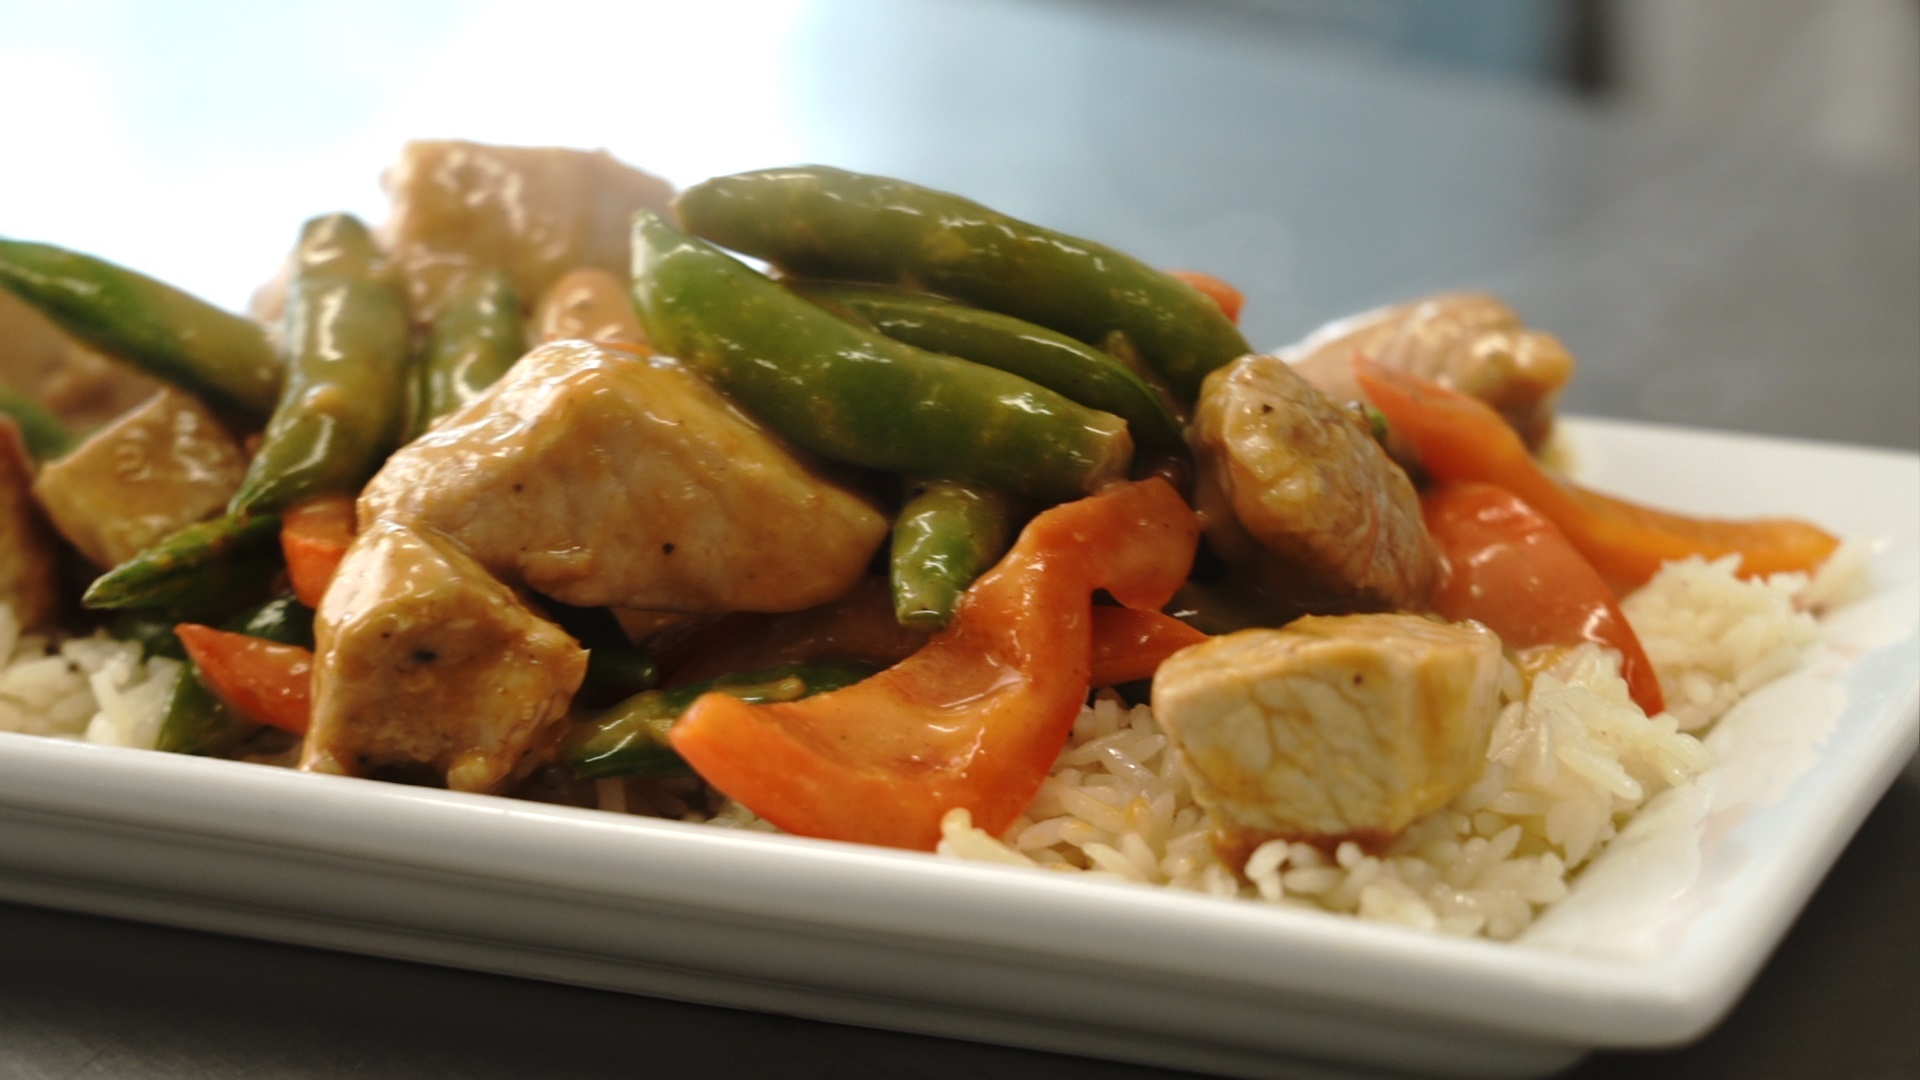 Thai coconut pork curry with vegetables served over rice